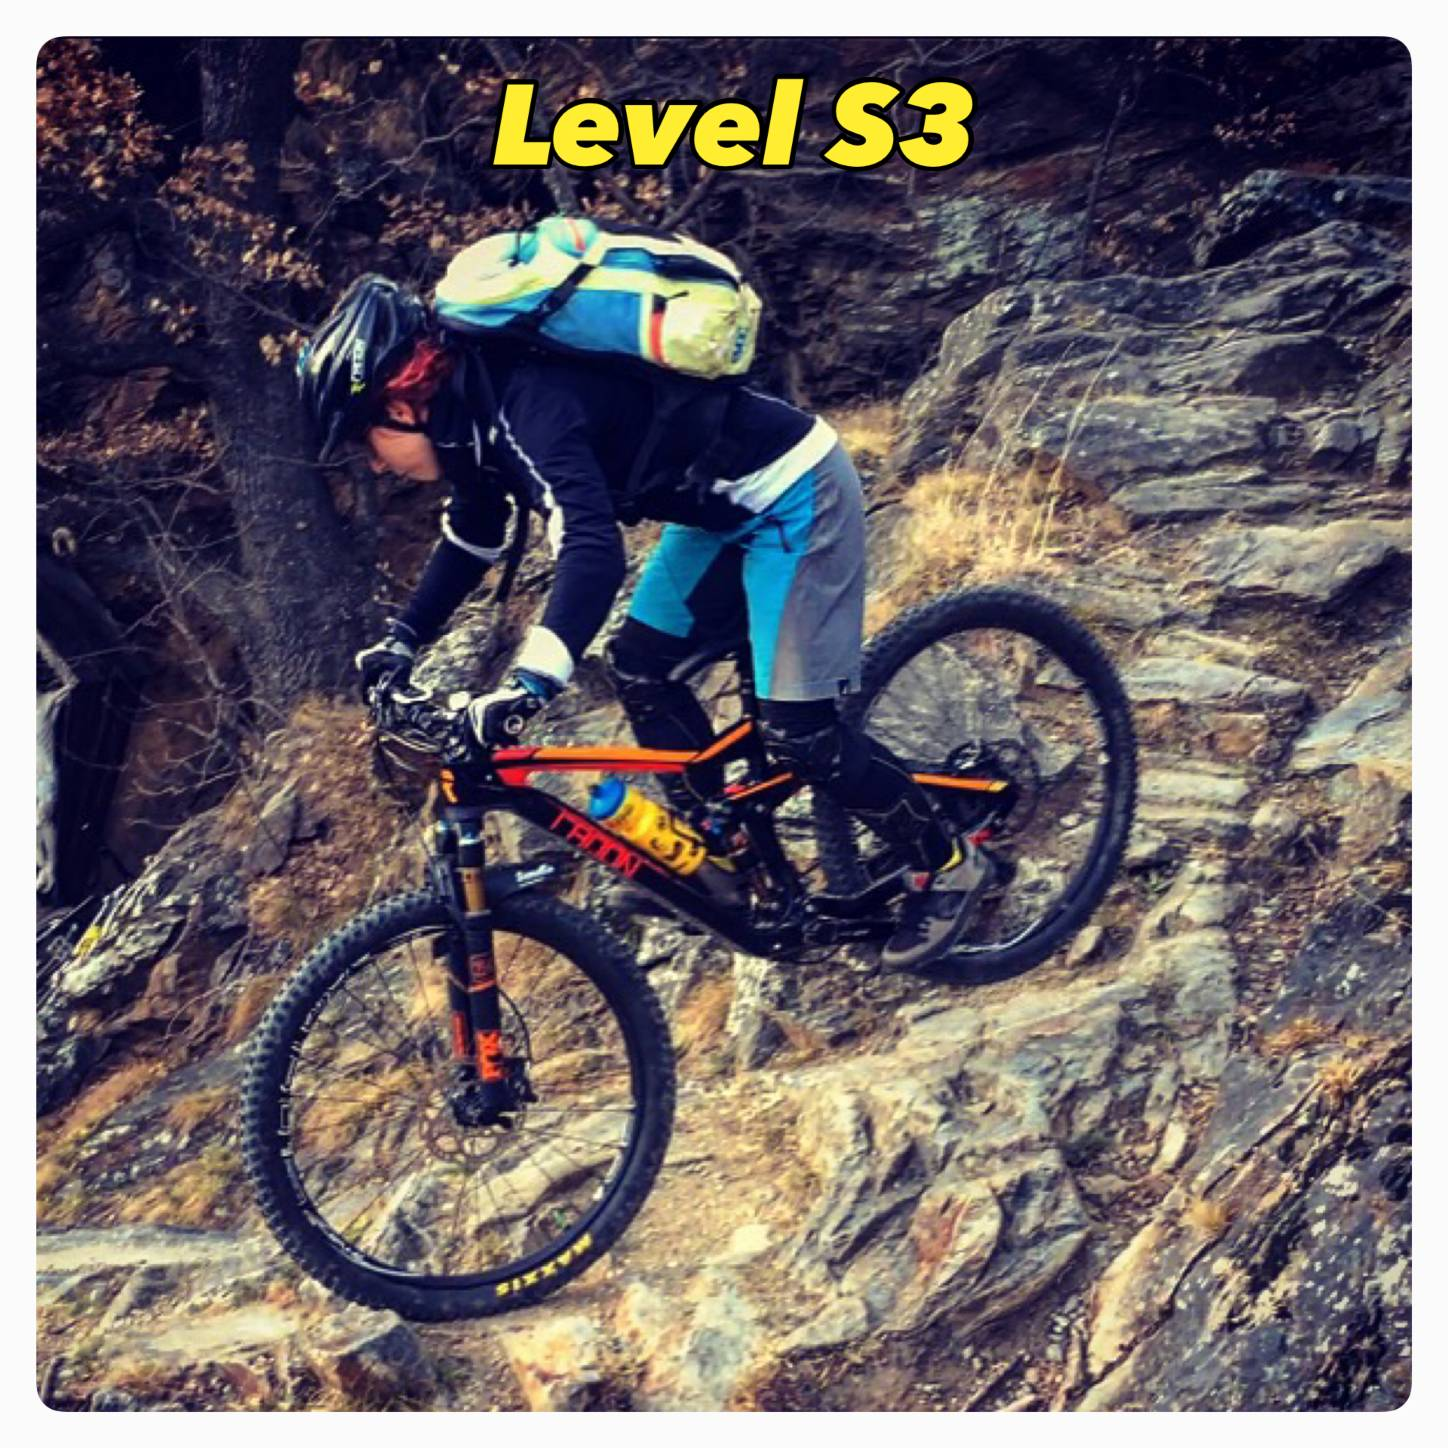 Level 3 Touren für absolute MTB-Pros auf Mallorca